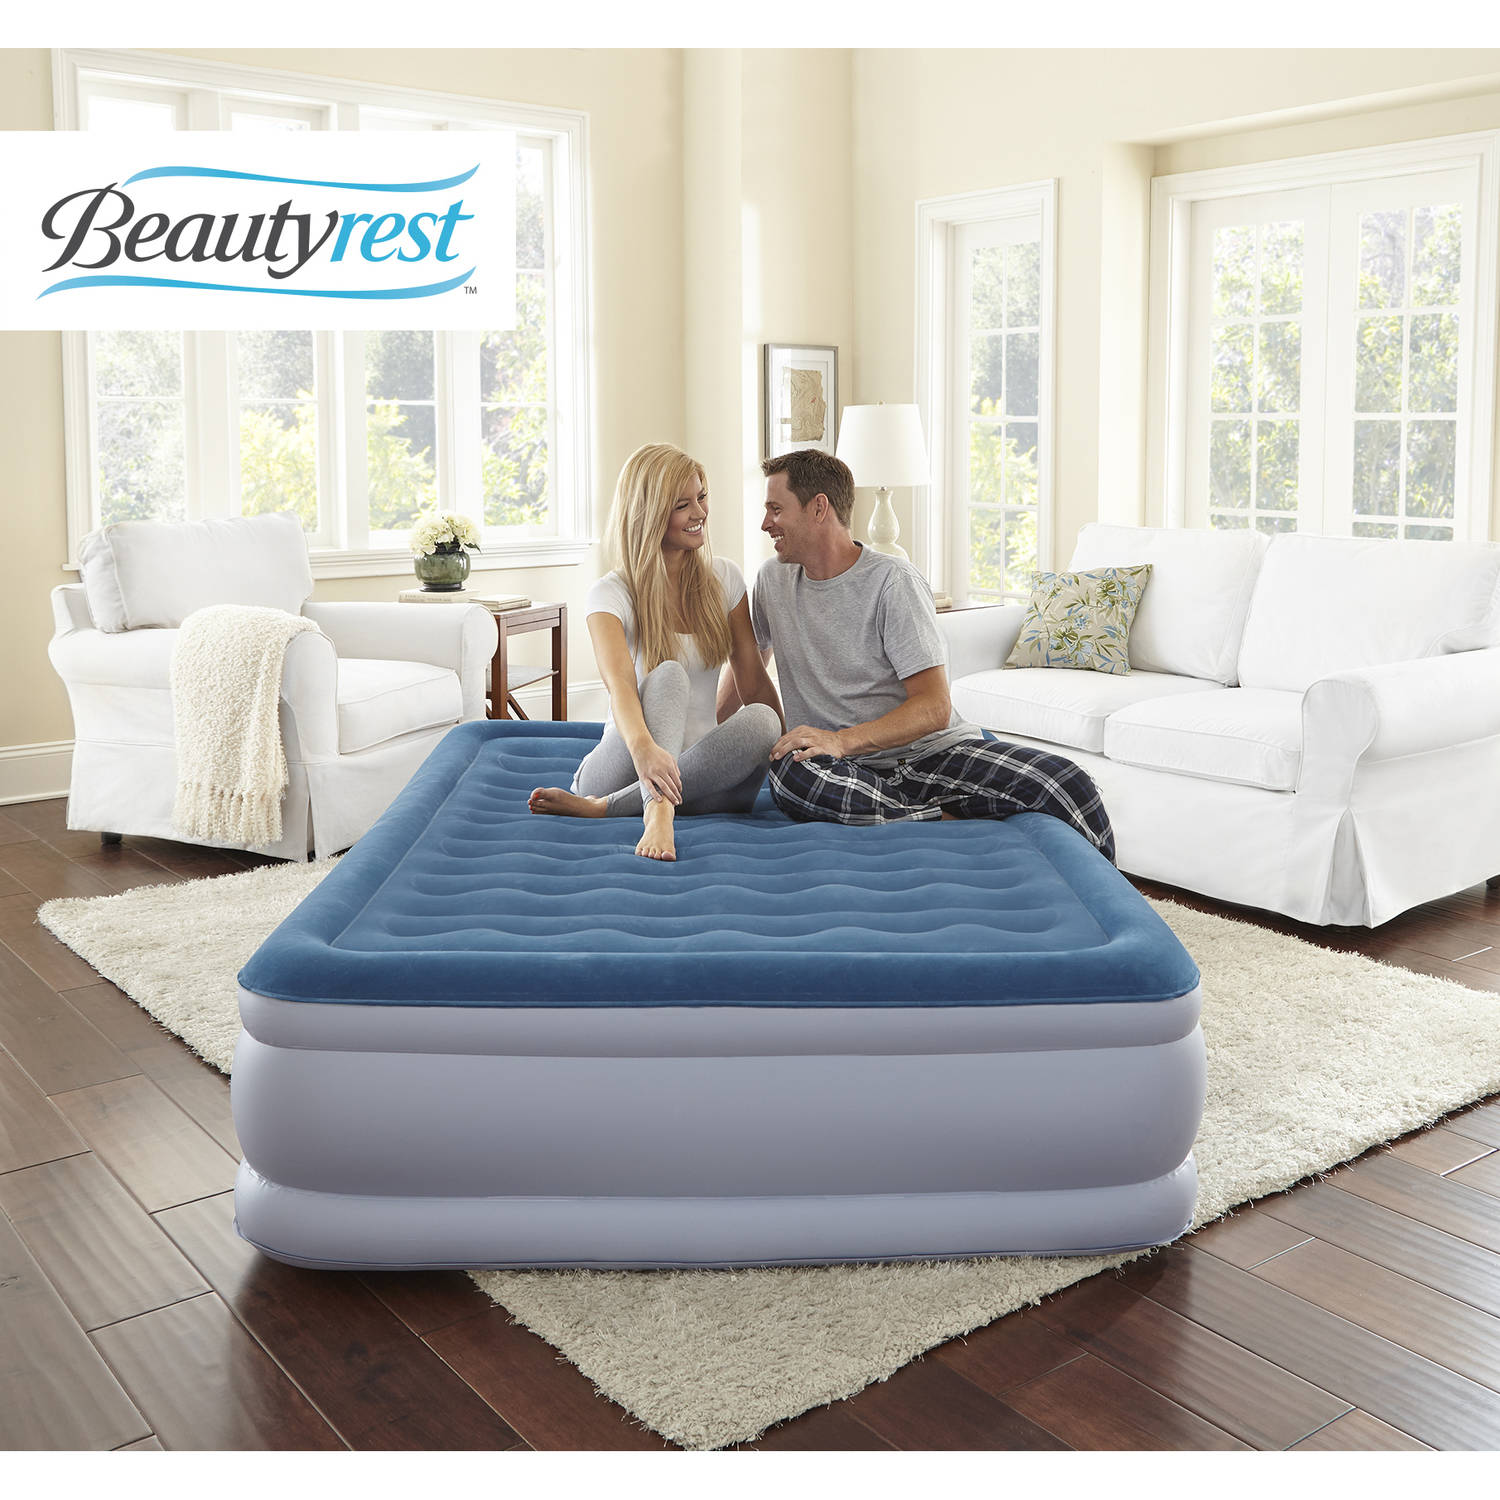 Drawn bedroom mattress And Extraordinaire Raised Bed